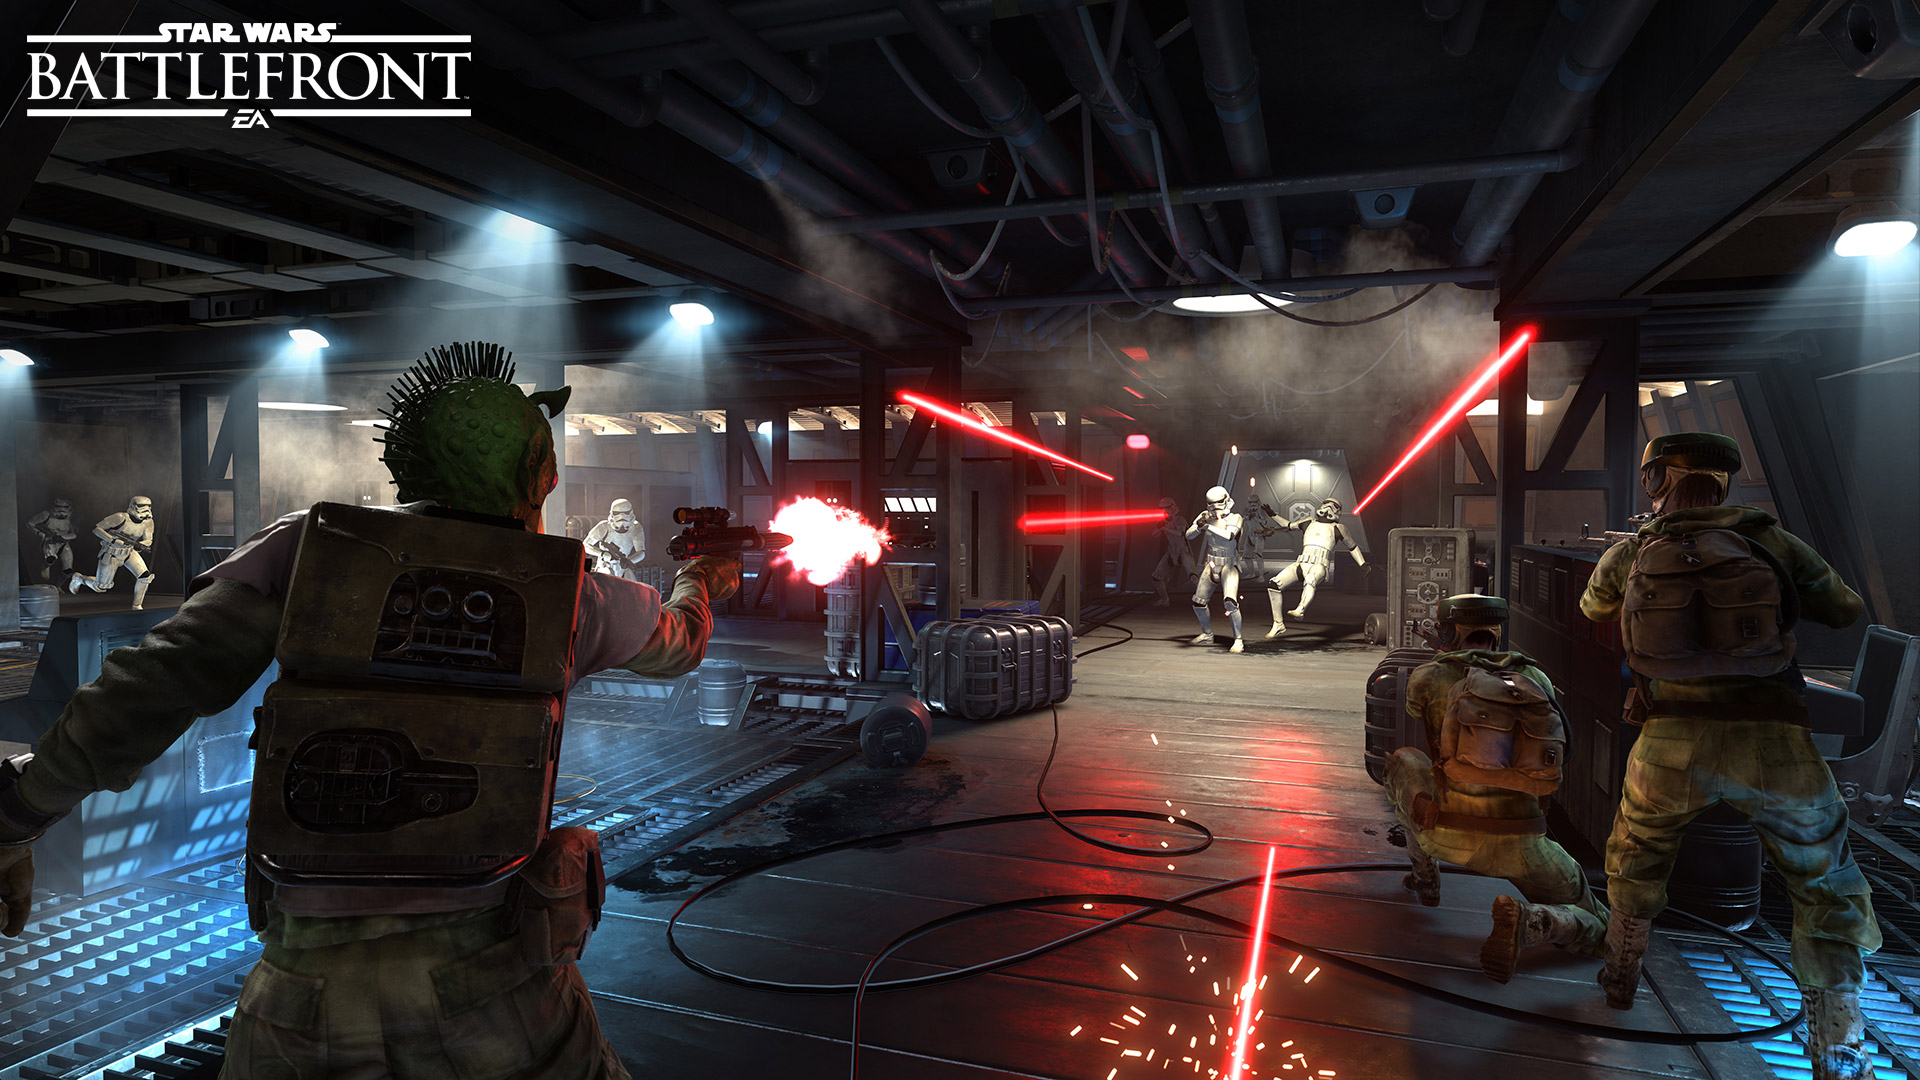 Star Wars: Battlefront - there's no video of Blast yet, but we're sure you can imagine